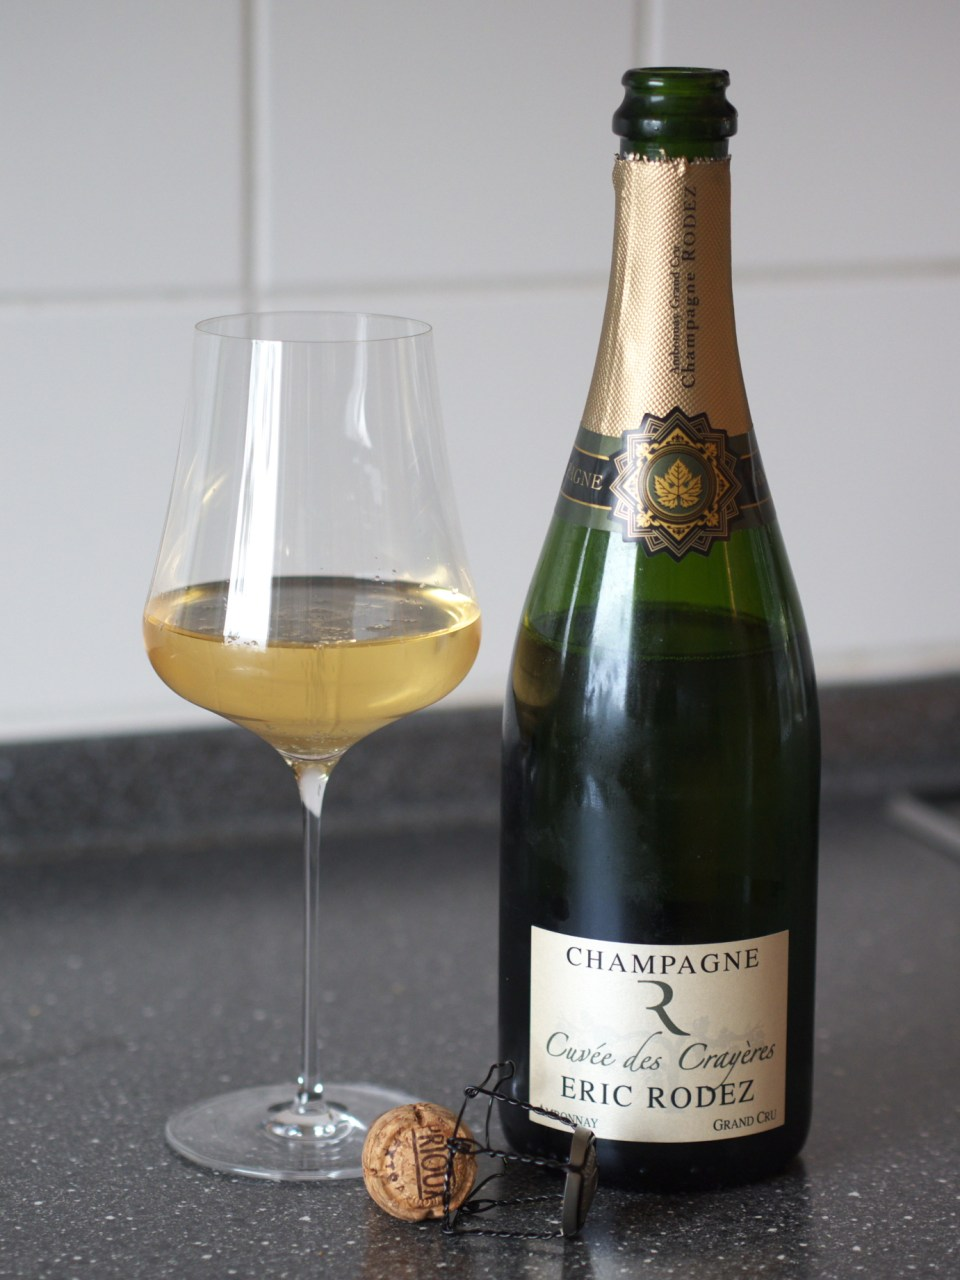 A glass and cottle of Cuvée des Crayères Champagne from Eric Rodez